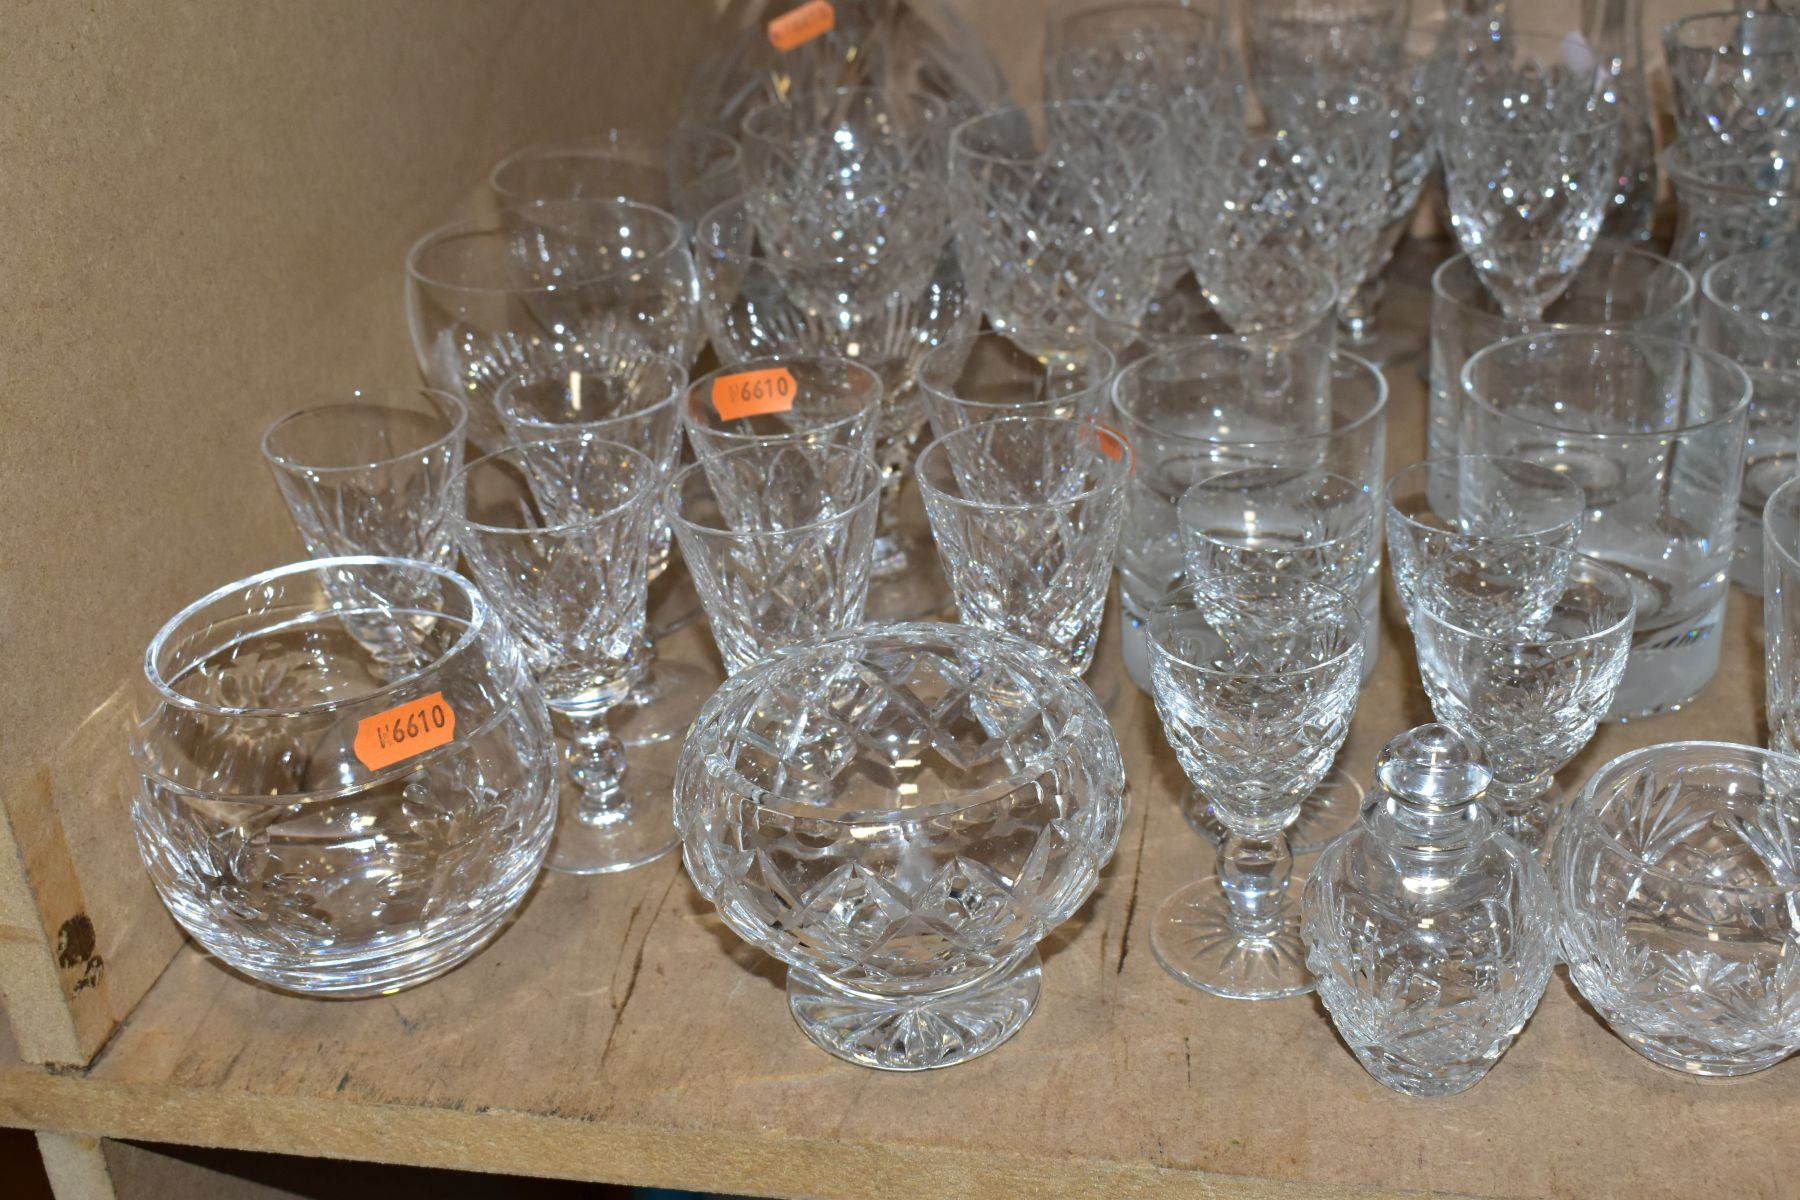 A GROUP OF GLASSWARE, including a boxed set of six Crystallera F.lli Fumo wine glasses, one set - Image 7 of 11